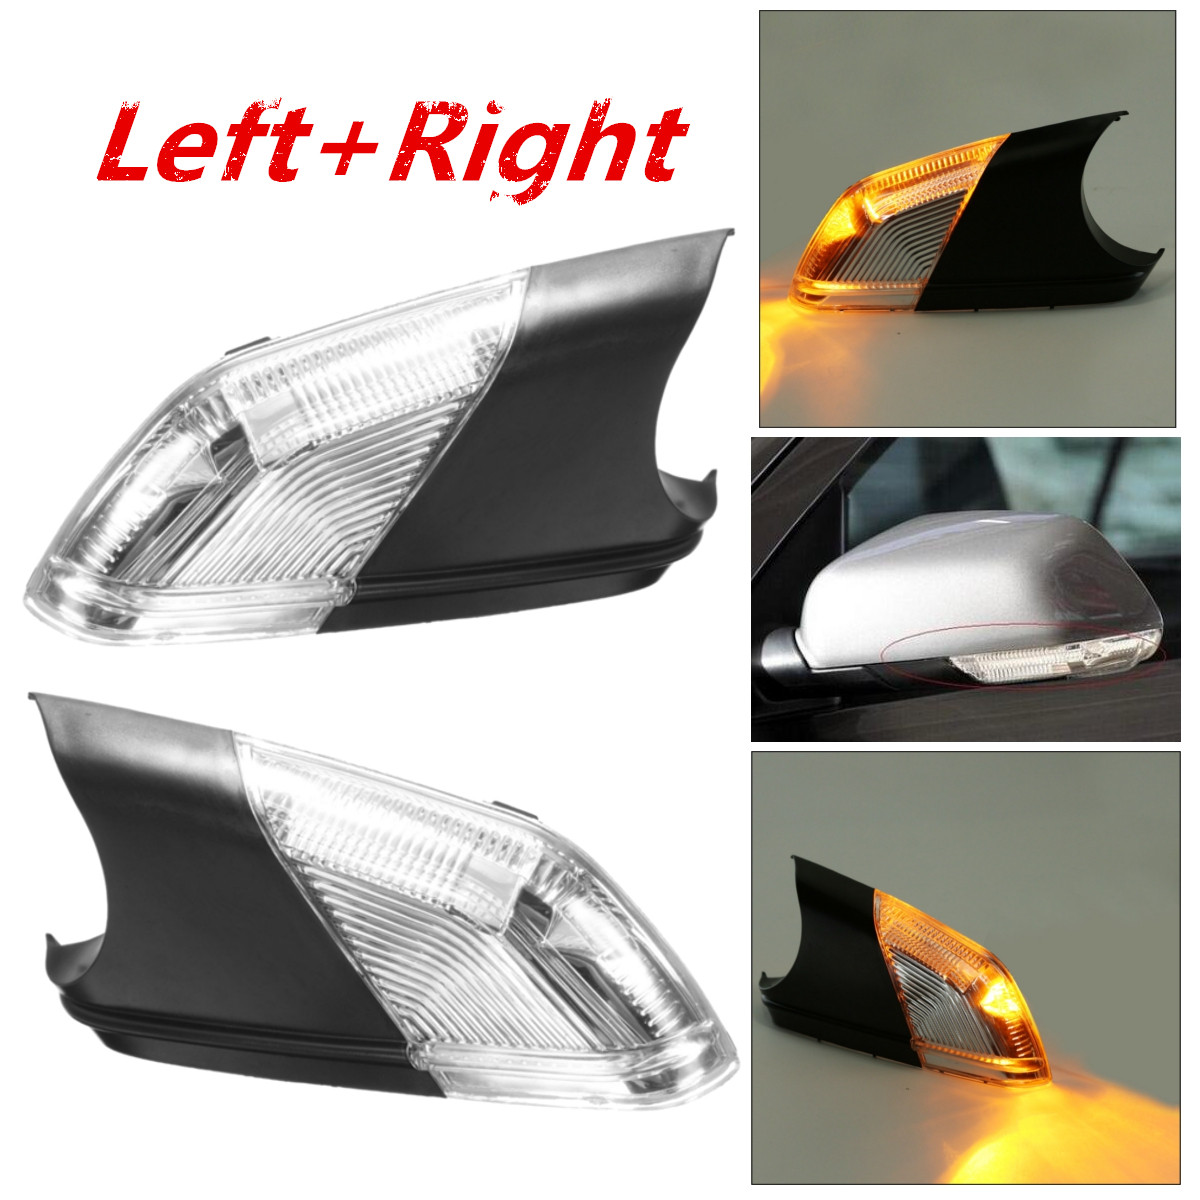 Left Right Side Wing Car Styling Rearview Mirror Turn Signal Light Indicator Lamps Bar Lighting For VW Polo Mk4 FL 2005-2009